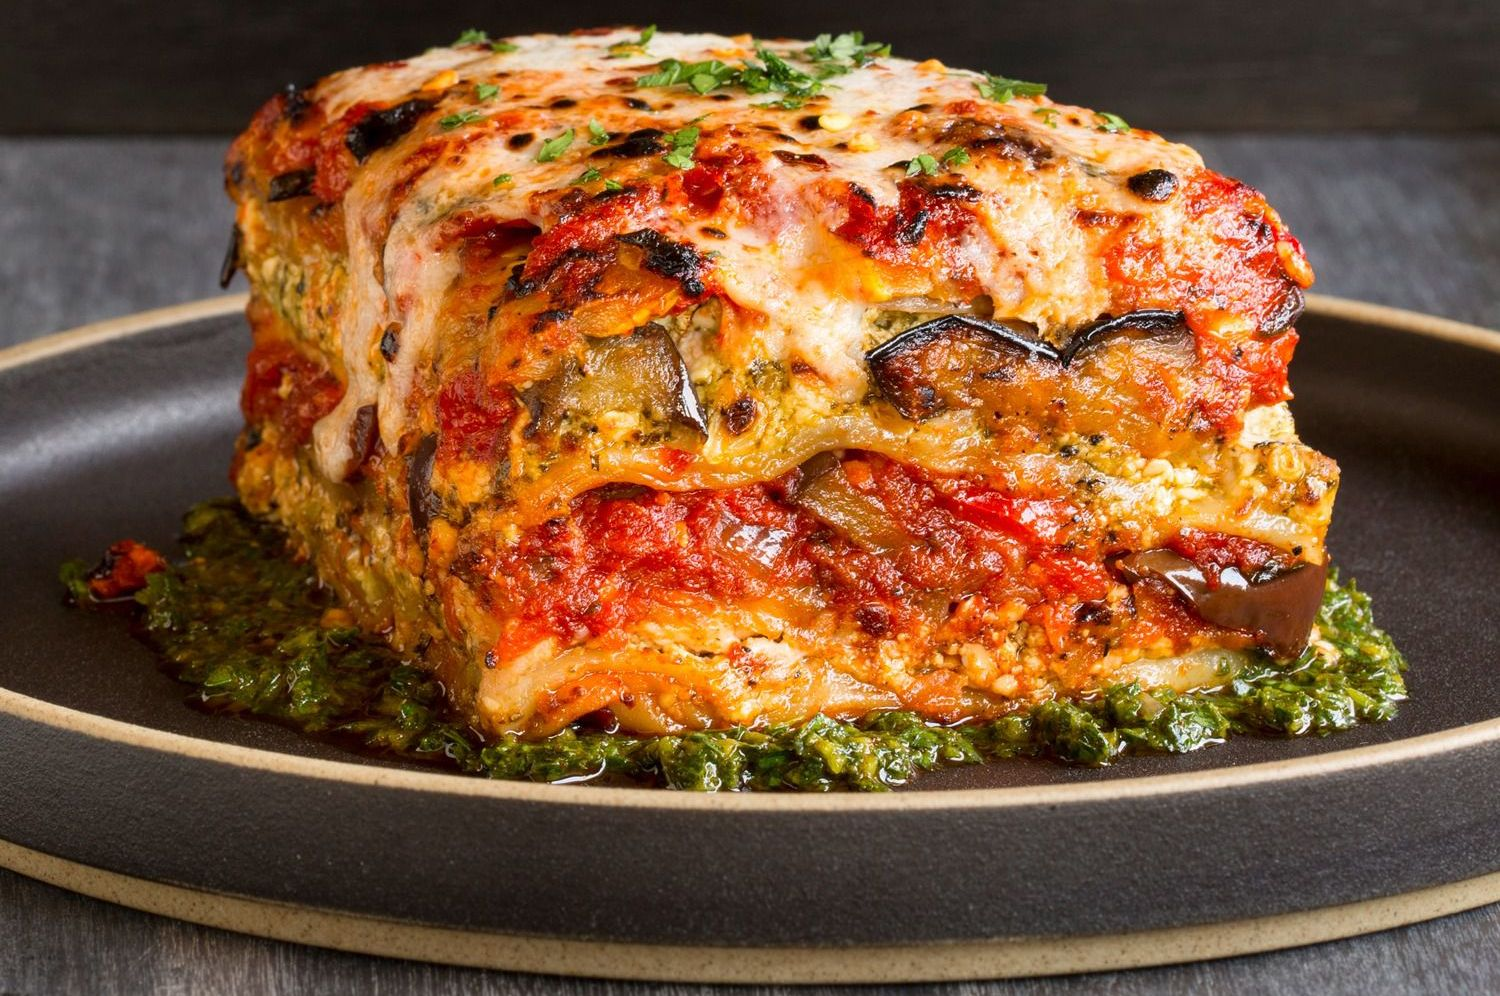 Vegan Grilled Garden Vegetable Lasagna With Puttanesca Sauce – The ...